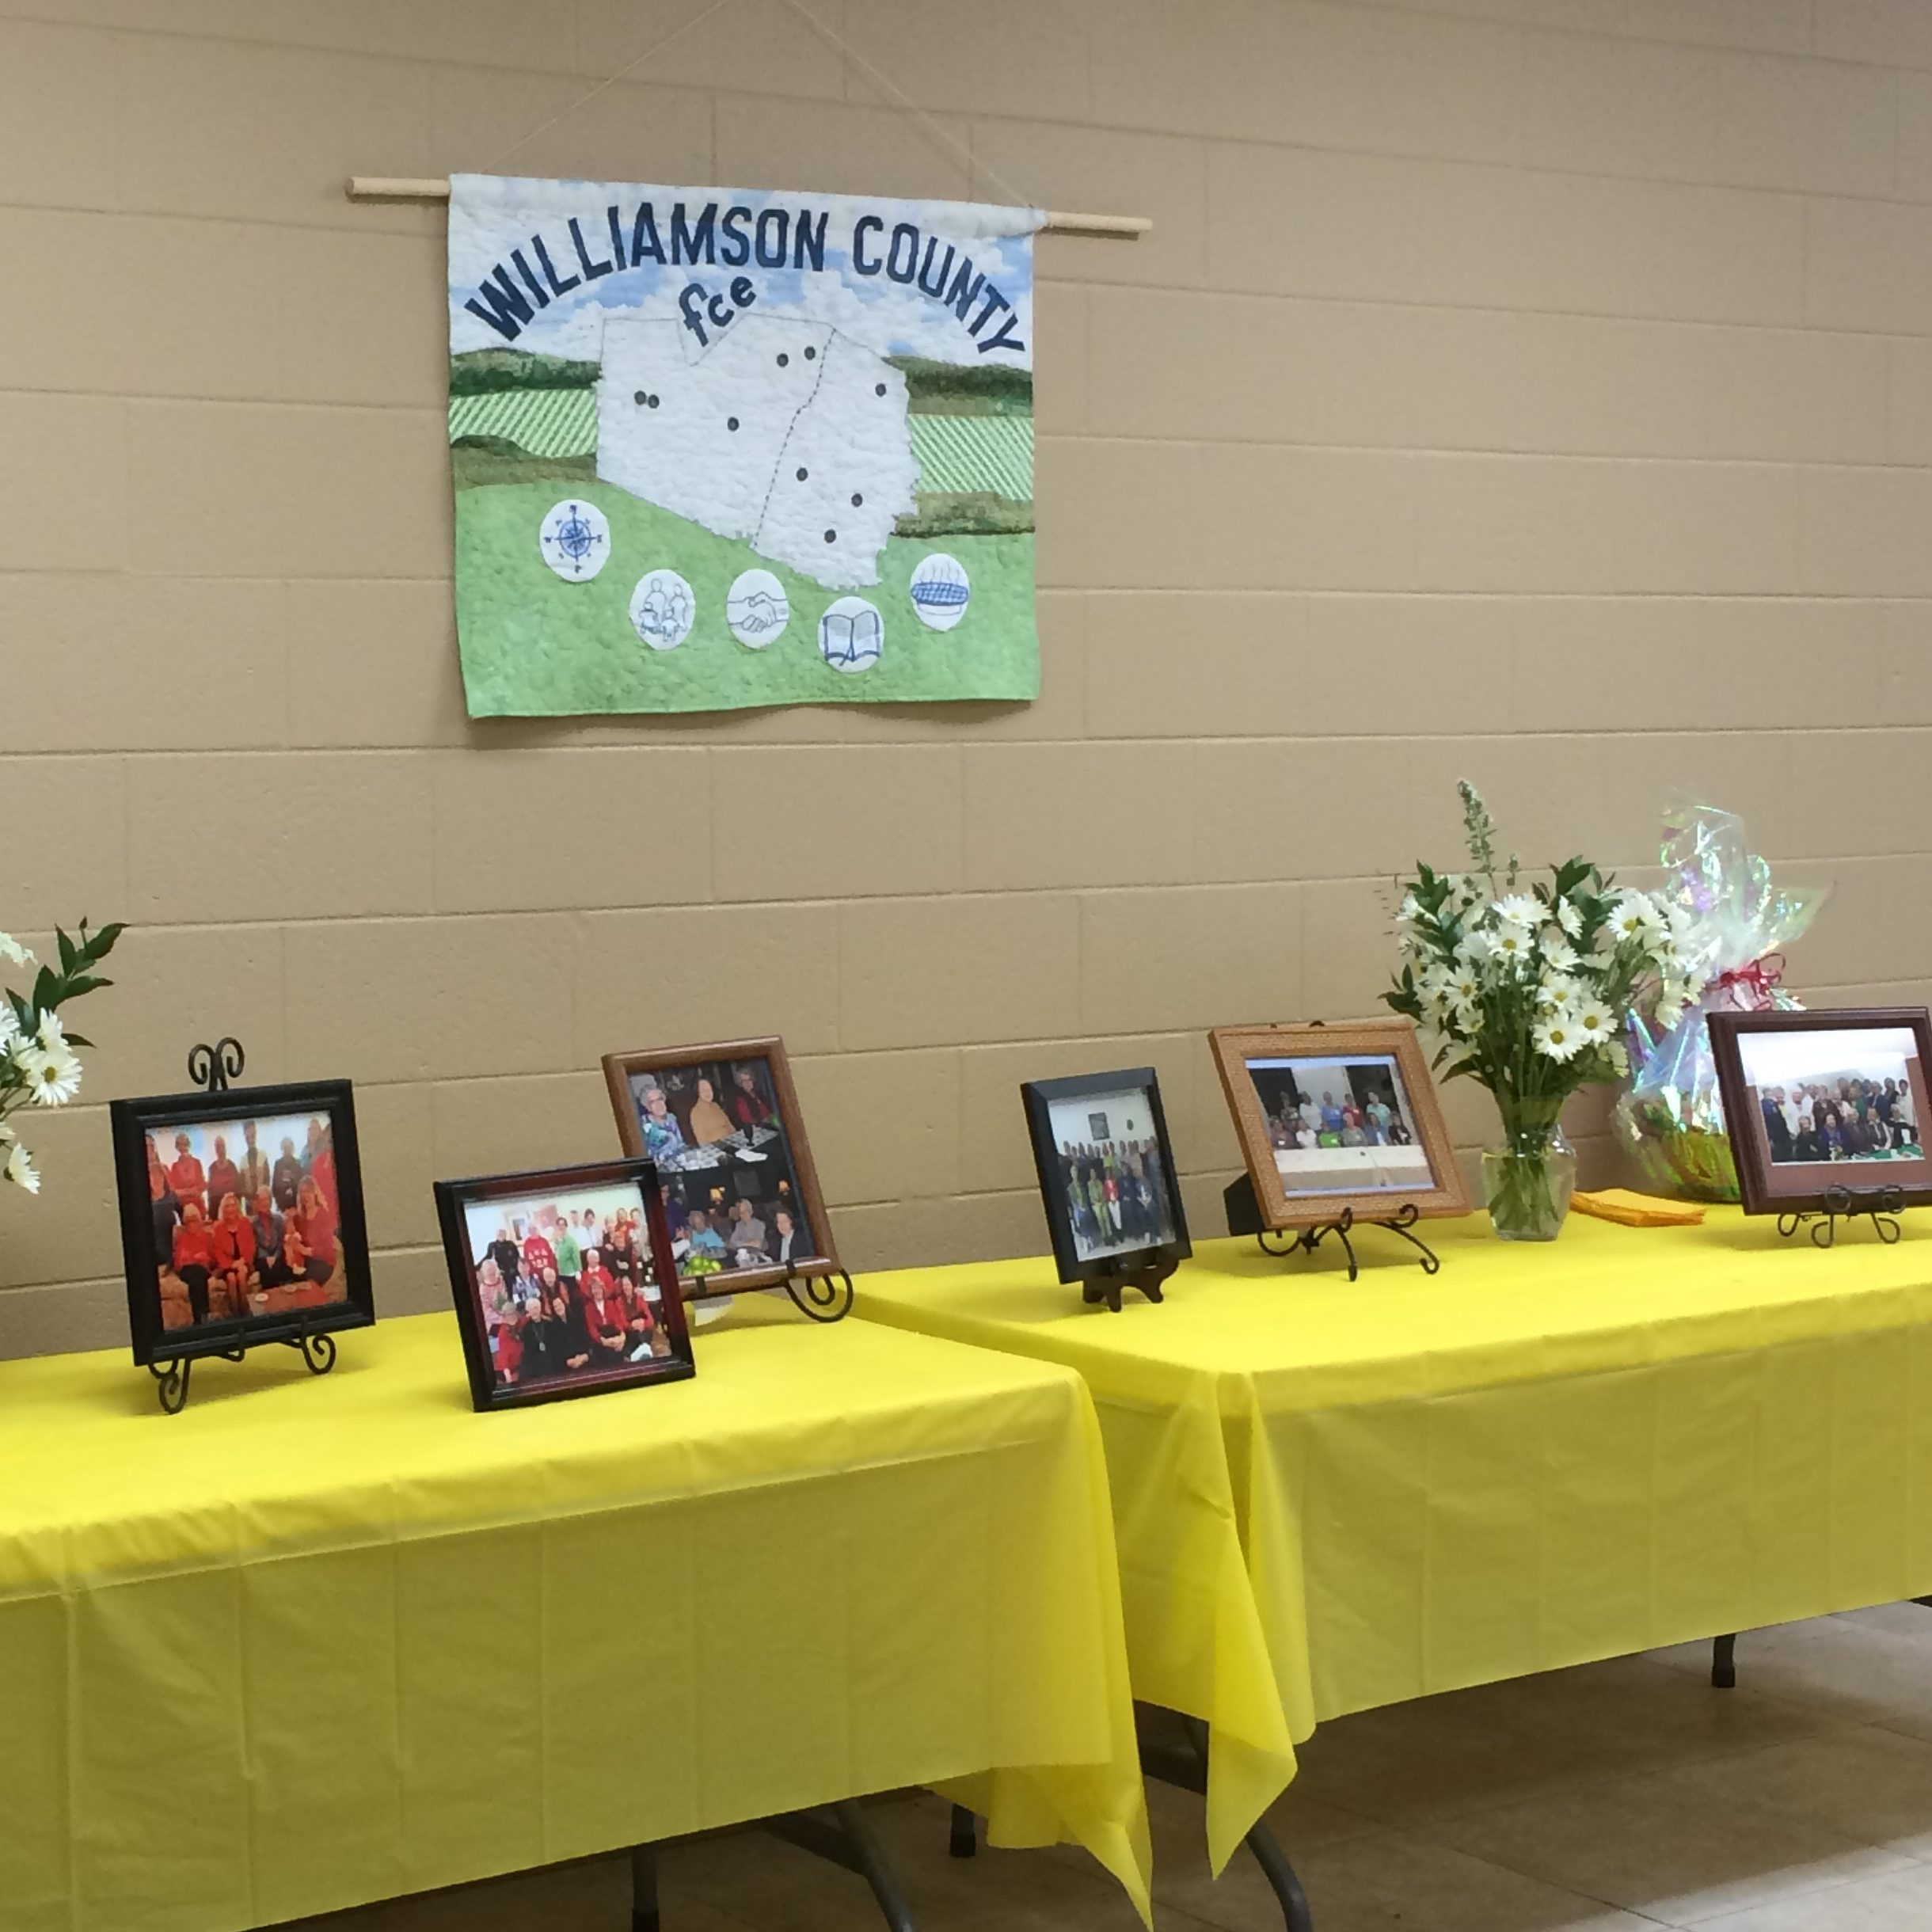 Table showing pictures and awards